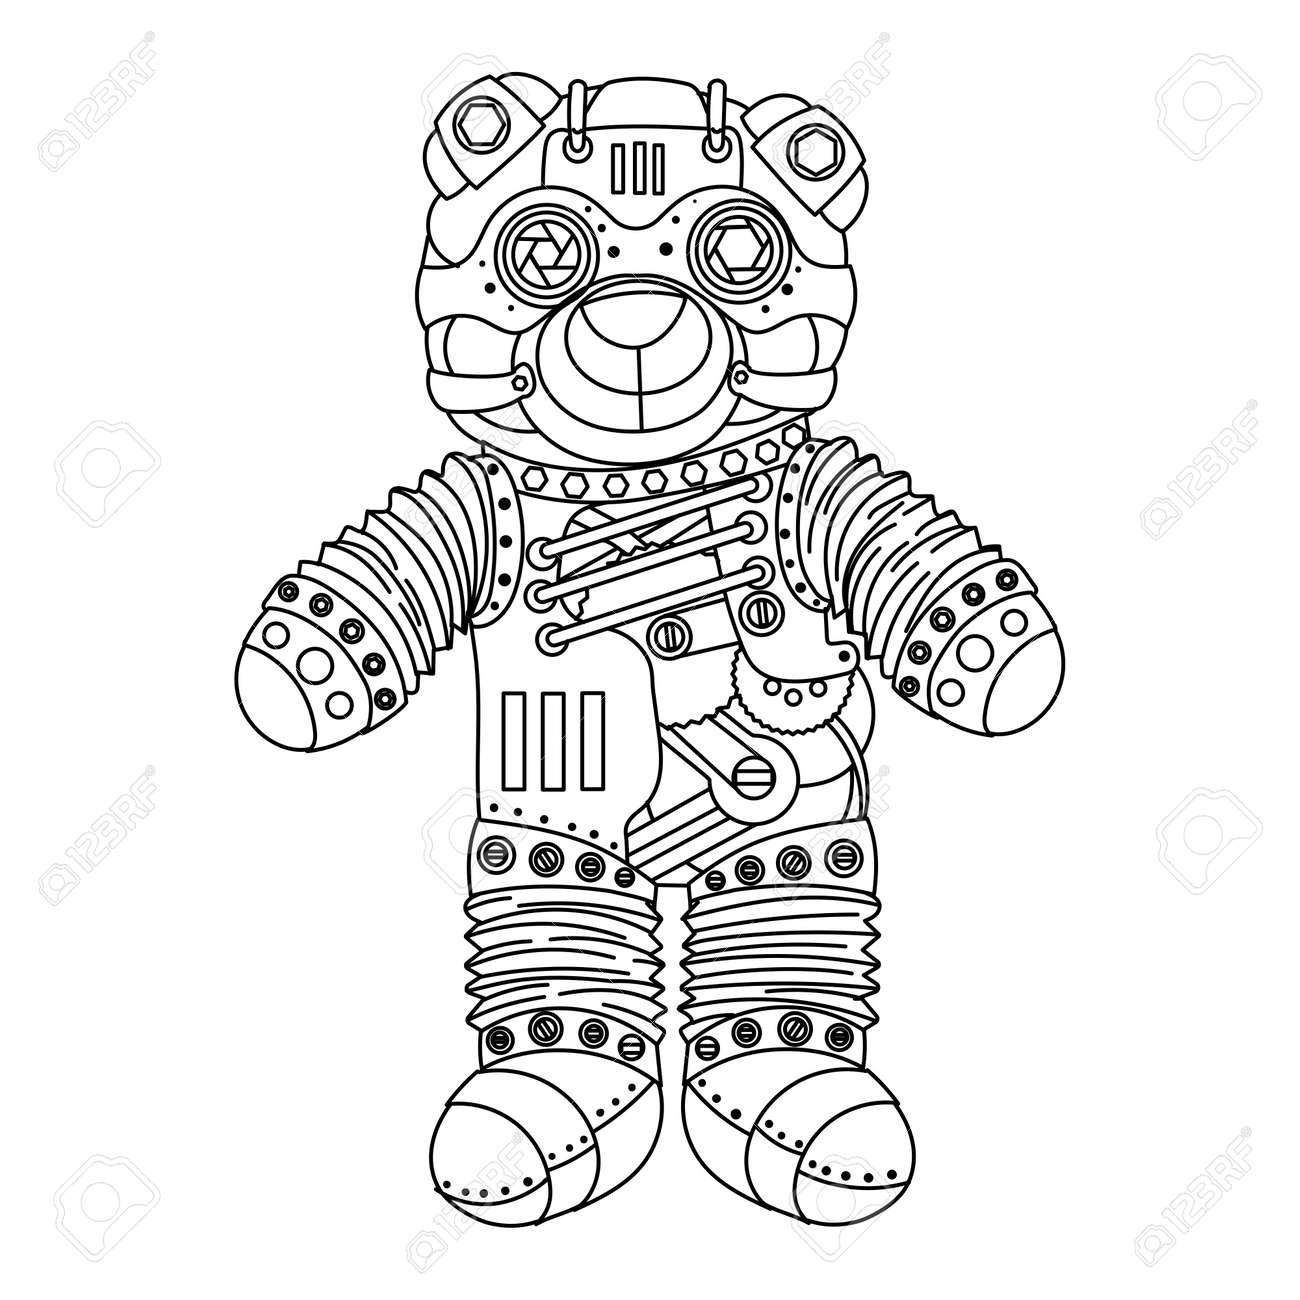 ste unk style bear mechanical animal coloring book for adult  ste unk style bear mechanical animal coloring book for adult illustration stock vector